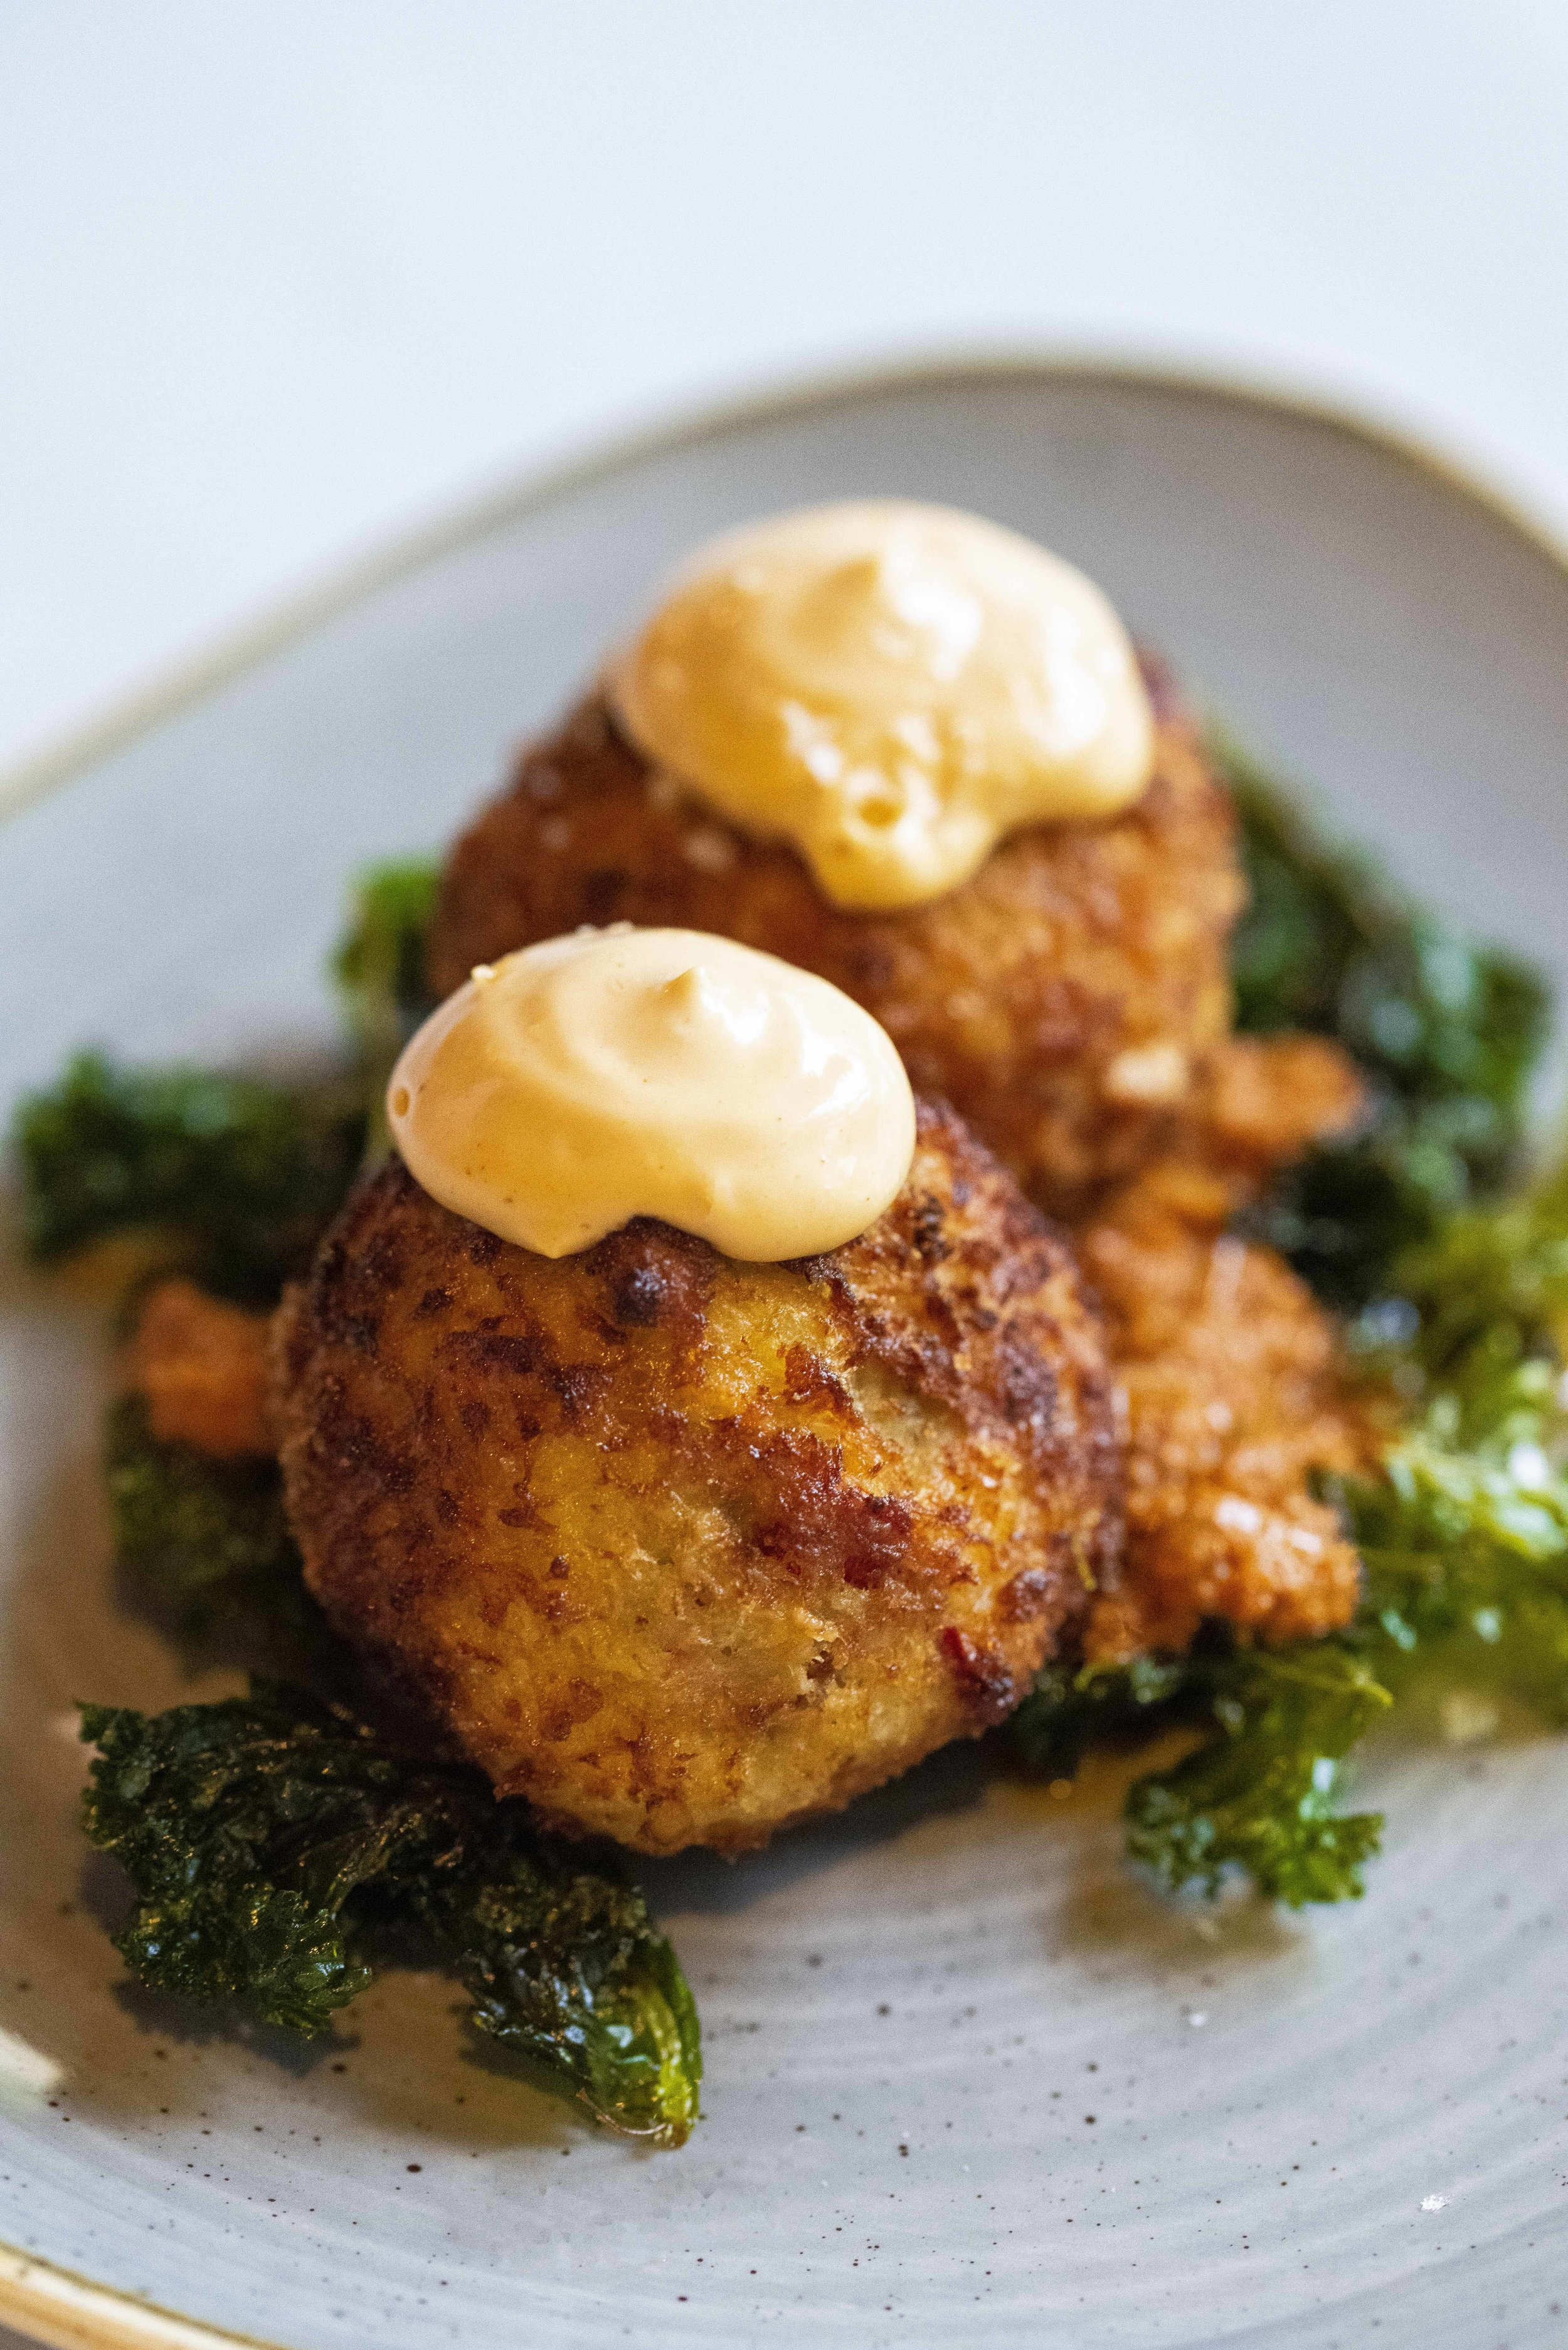 Bombas with kale at Debutis, Barcelona. Photo © Barcelona Food Experience.